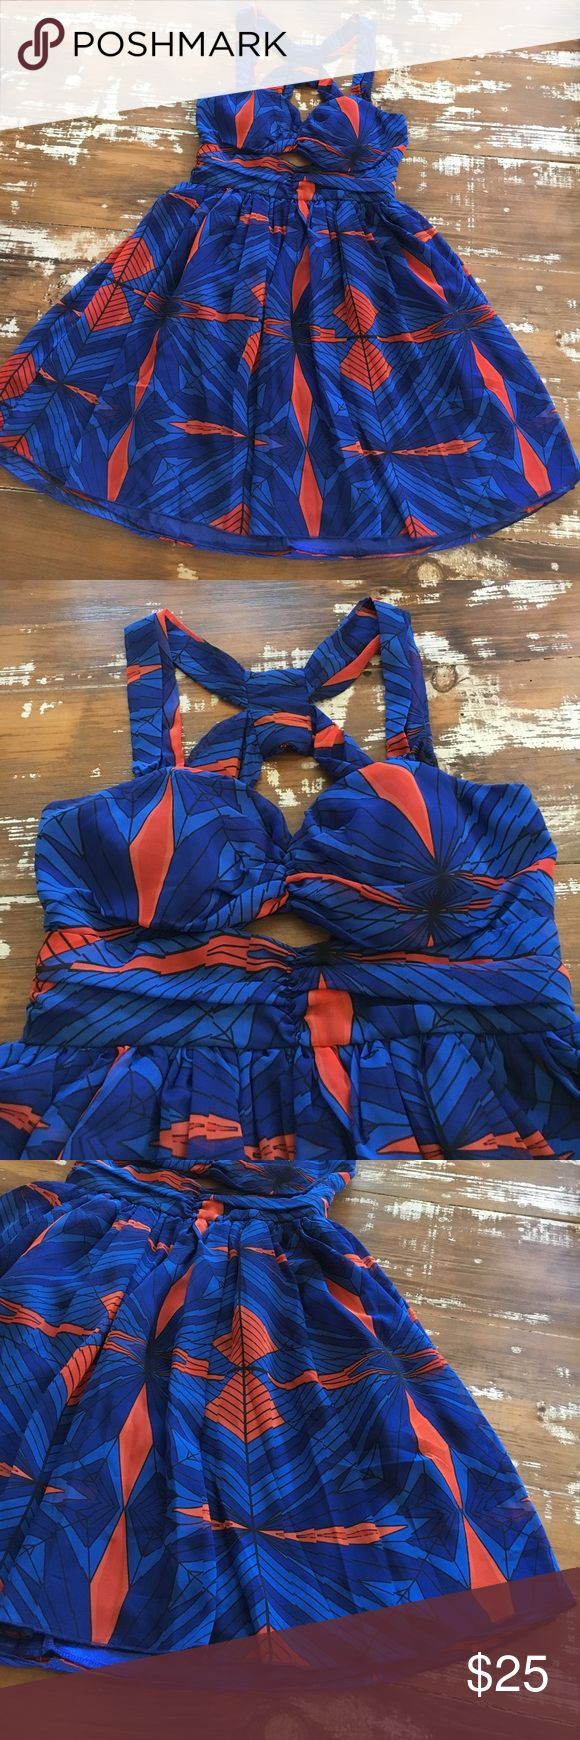 💙✴️BLUE|ORANGE Print Skater Dress! ✴️How adorable is this dress?!??? Super cute short skater type dress, zips in back to waist. Cross cross back design, lightly padded with sweetheart neckline and cut out! Fully lined too! Designed with Bright shades of cobalt and light blue mixed with deep orange. Worn once and sadly doesn't fit anymore. Excellent brand new condition!✴️ OFFERS WELCOME! 😙 XOXO Dresses Mini